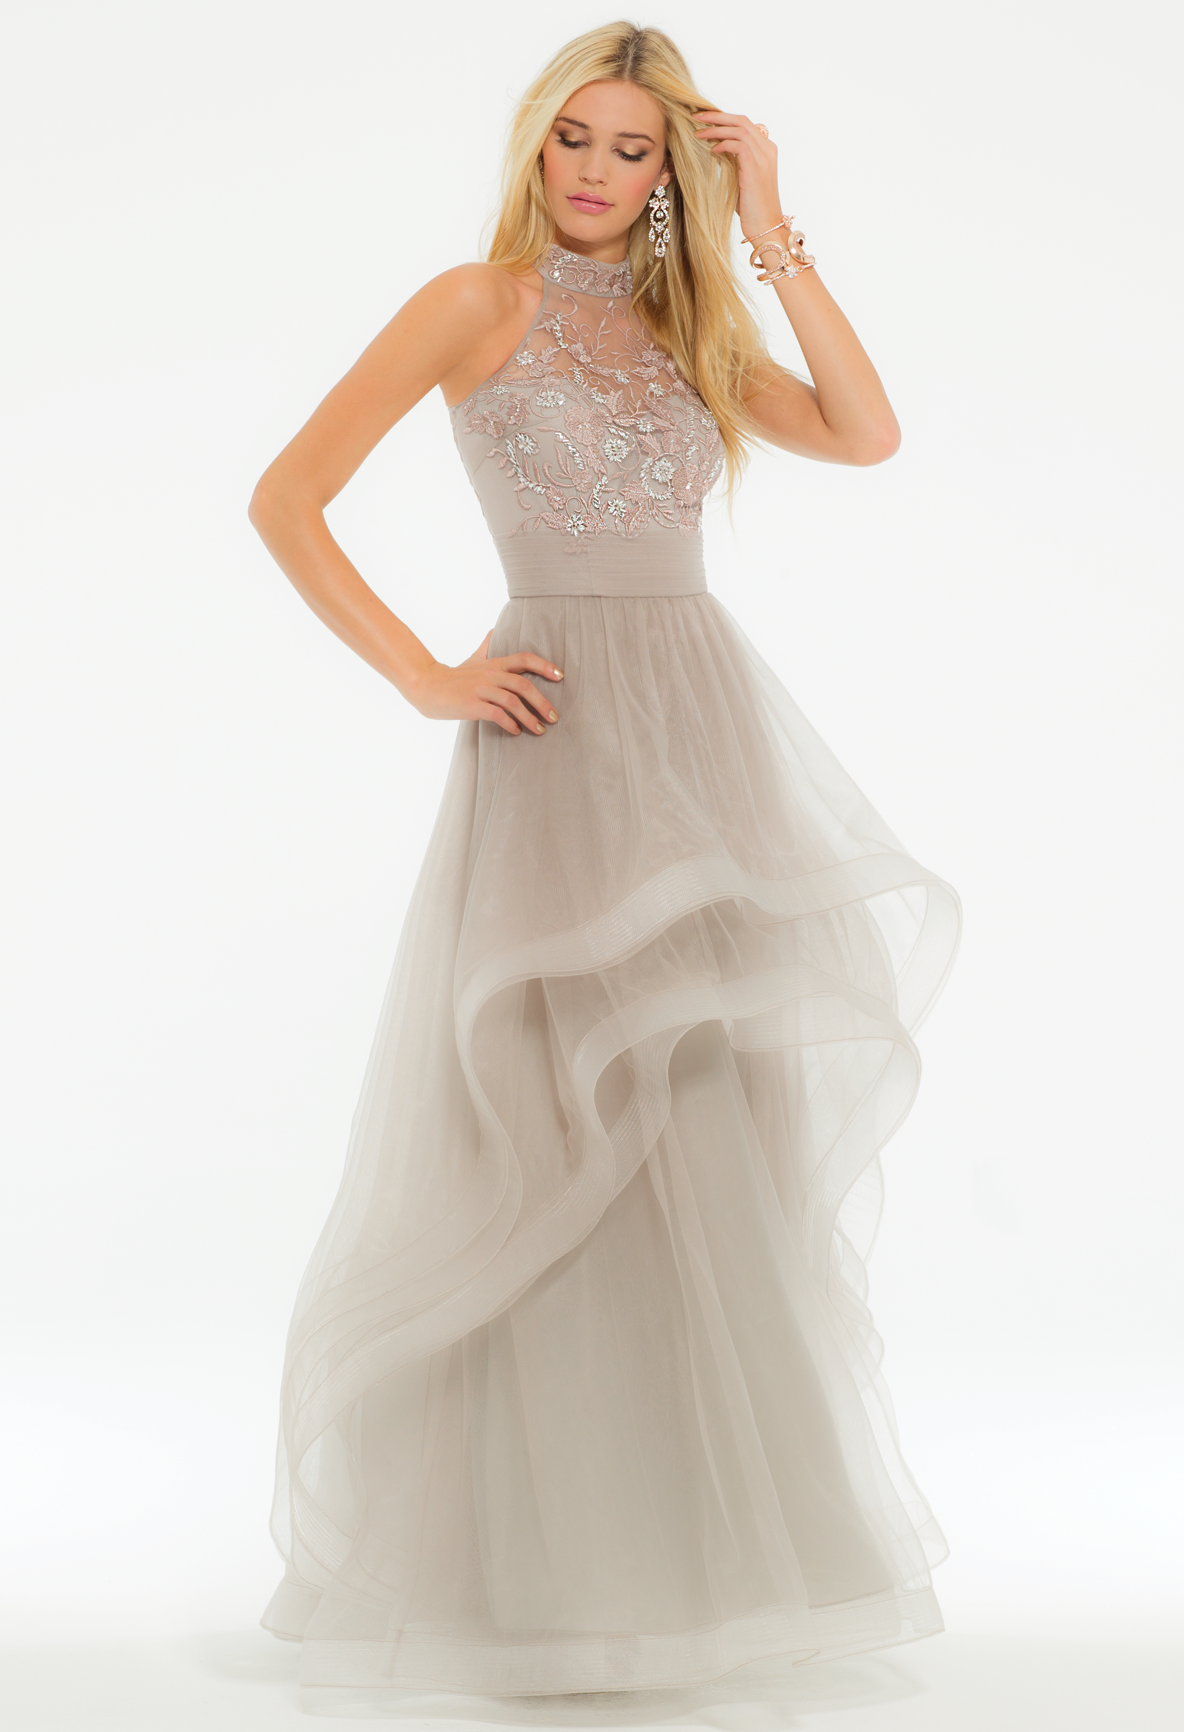 Float to your event in this magnificent ball gown dress! The Cleo neckline, fitted bodice with embroidery, A-line skirt with high-low tiered hem, and racer back make this prom dress otherworldly. #CLVprom17 #camillelavie